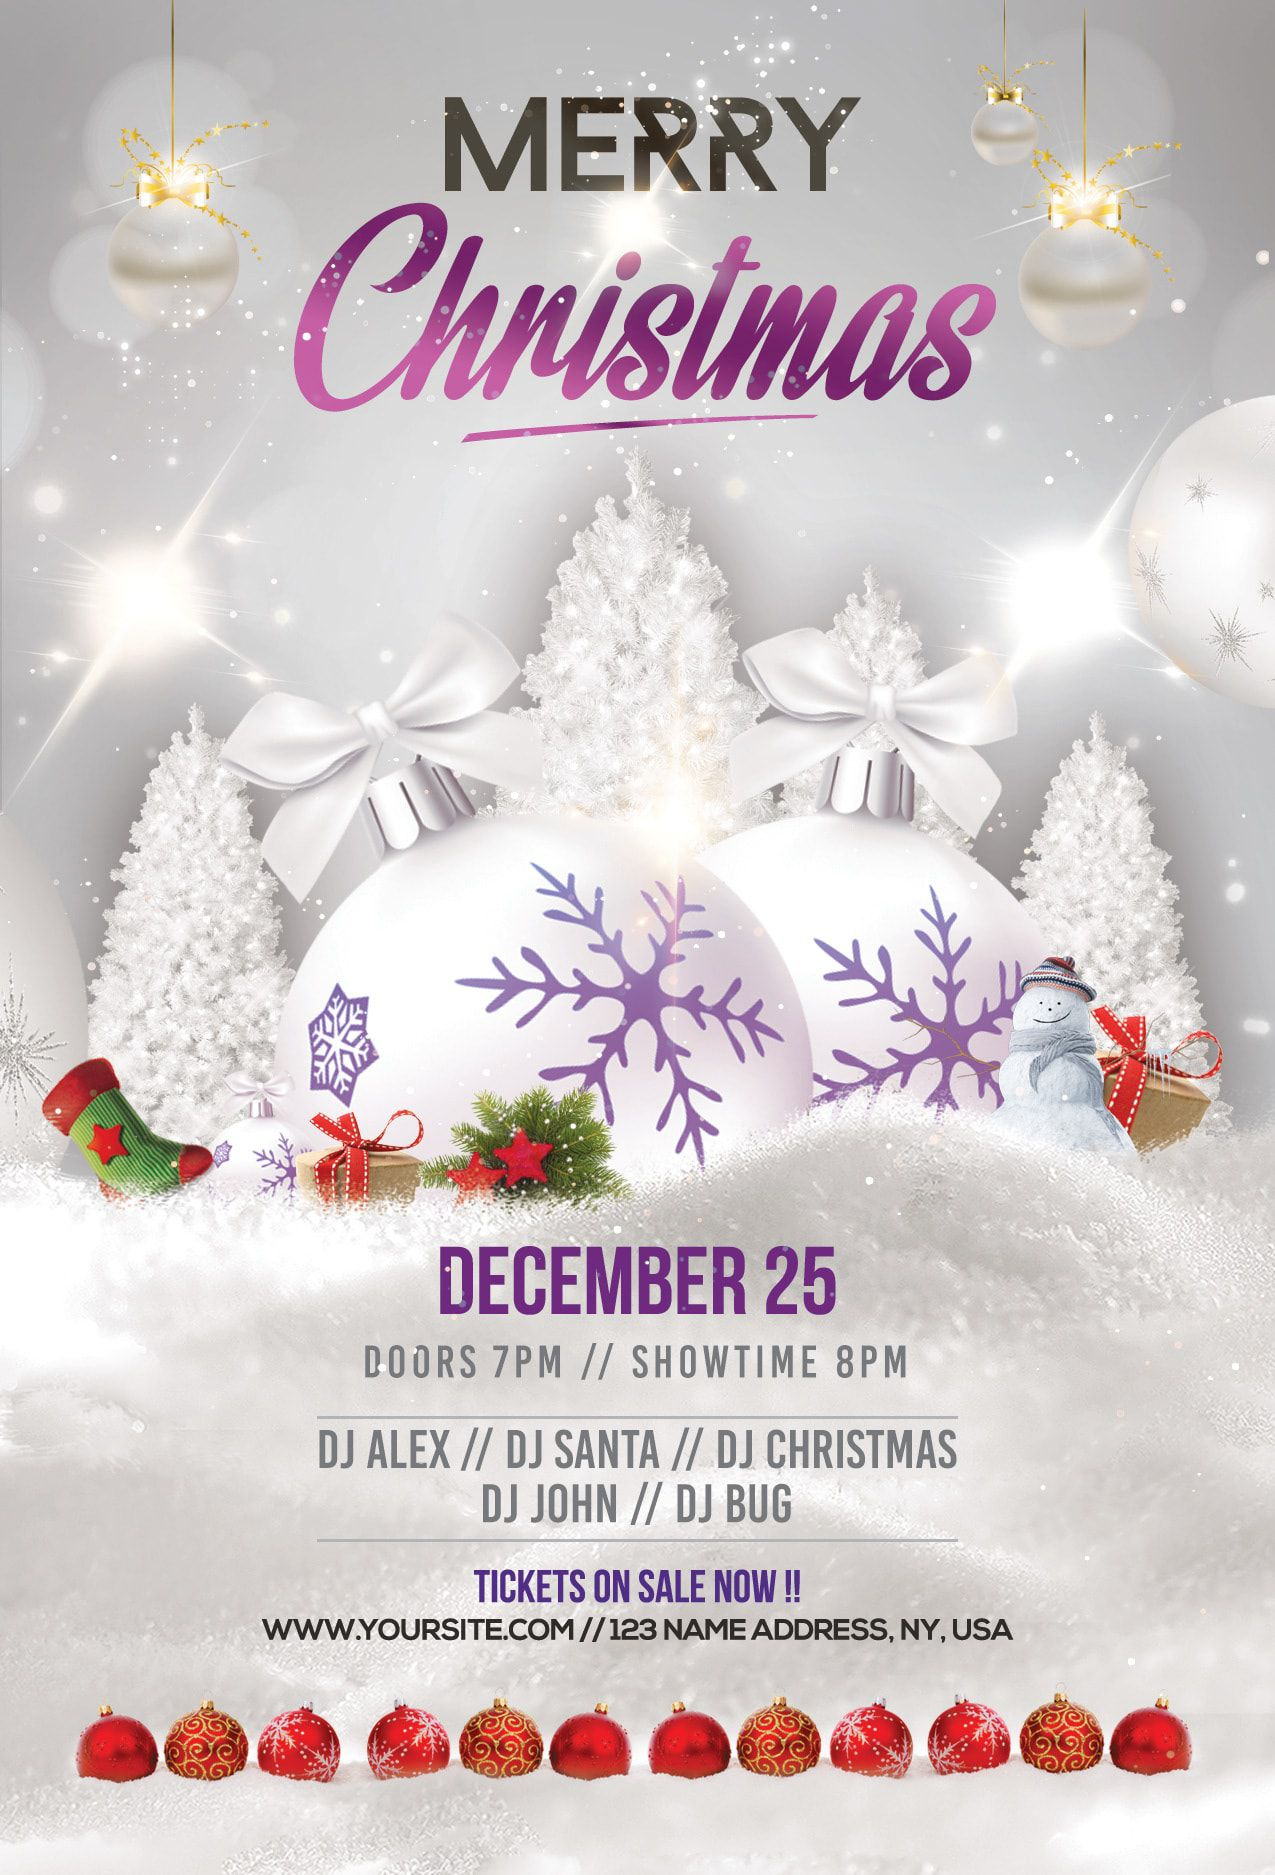 003 Unusual Free Holiday Flyer Template Inspiration  Templates For Word Printable ChristmaFull